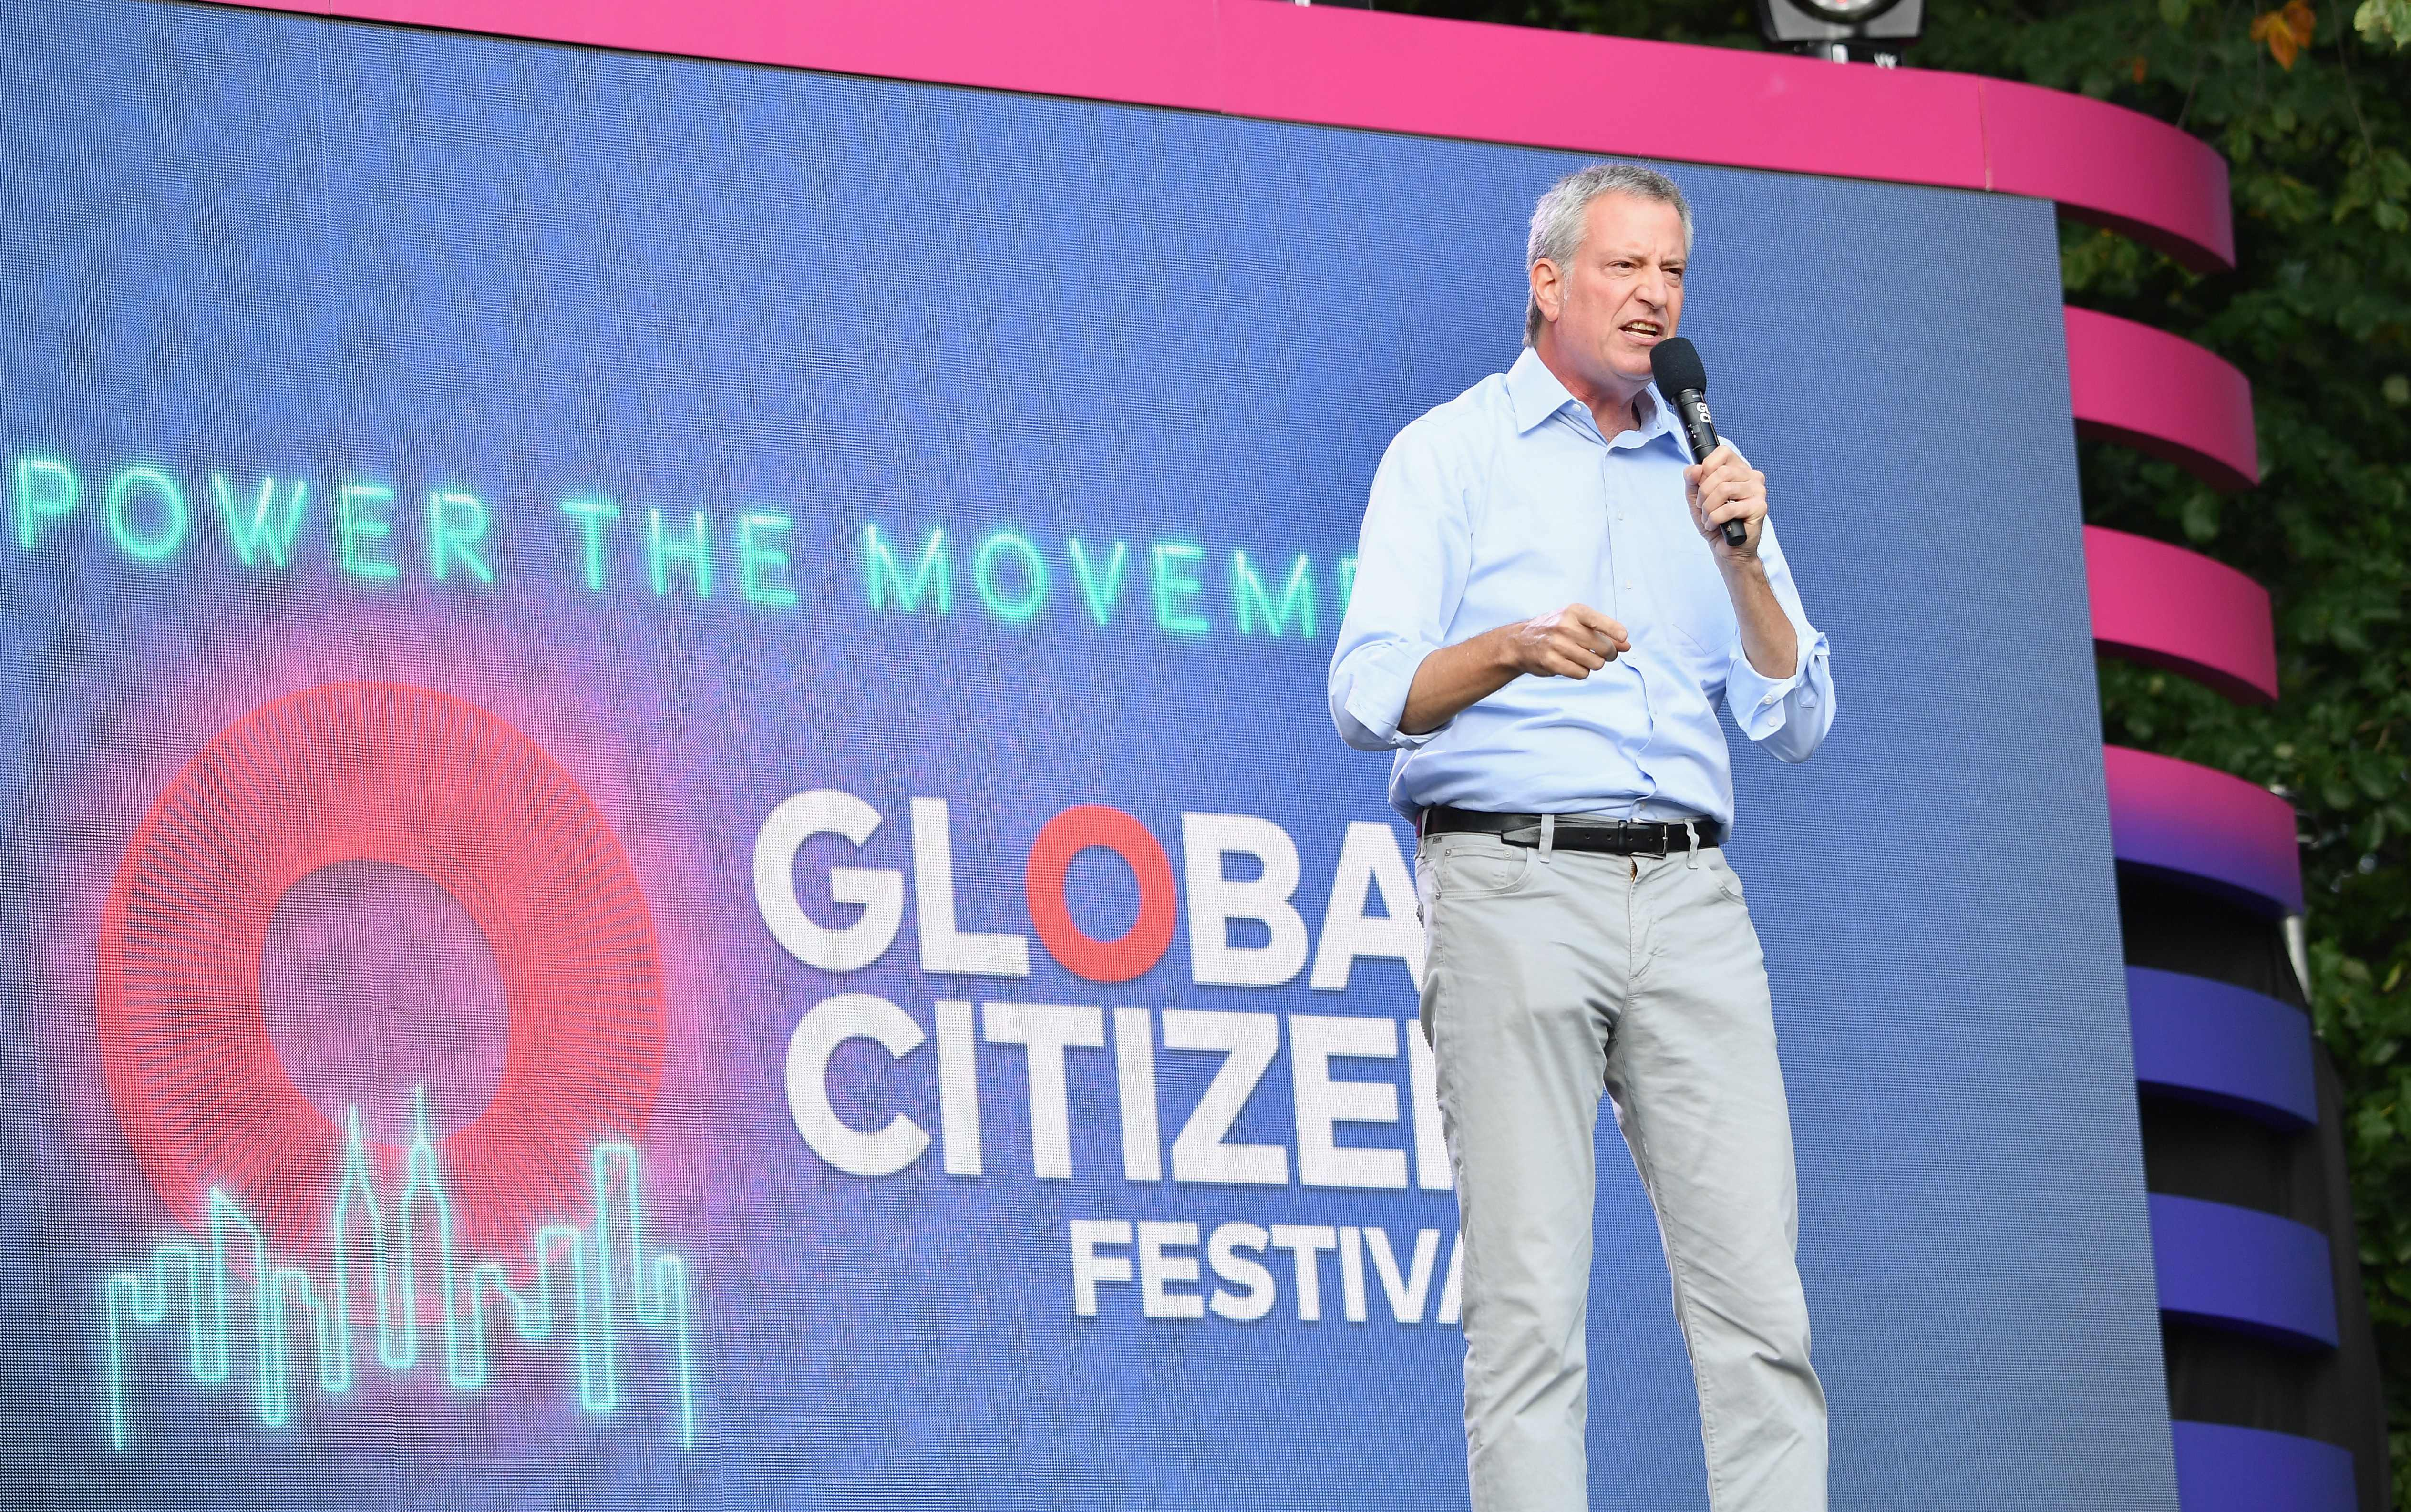 Mayor of New York City Bill de Blasio speaks onstage at the 2019 Global Citizen Festival: Power The Movement in Central Park in New York on September 28, 2019. (Photo by Angela Weiss / AFP)        (Photo credit should read ANGELA WEISS/AFP/Getty Images)